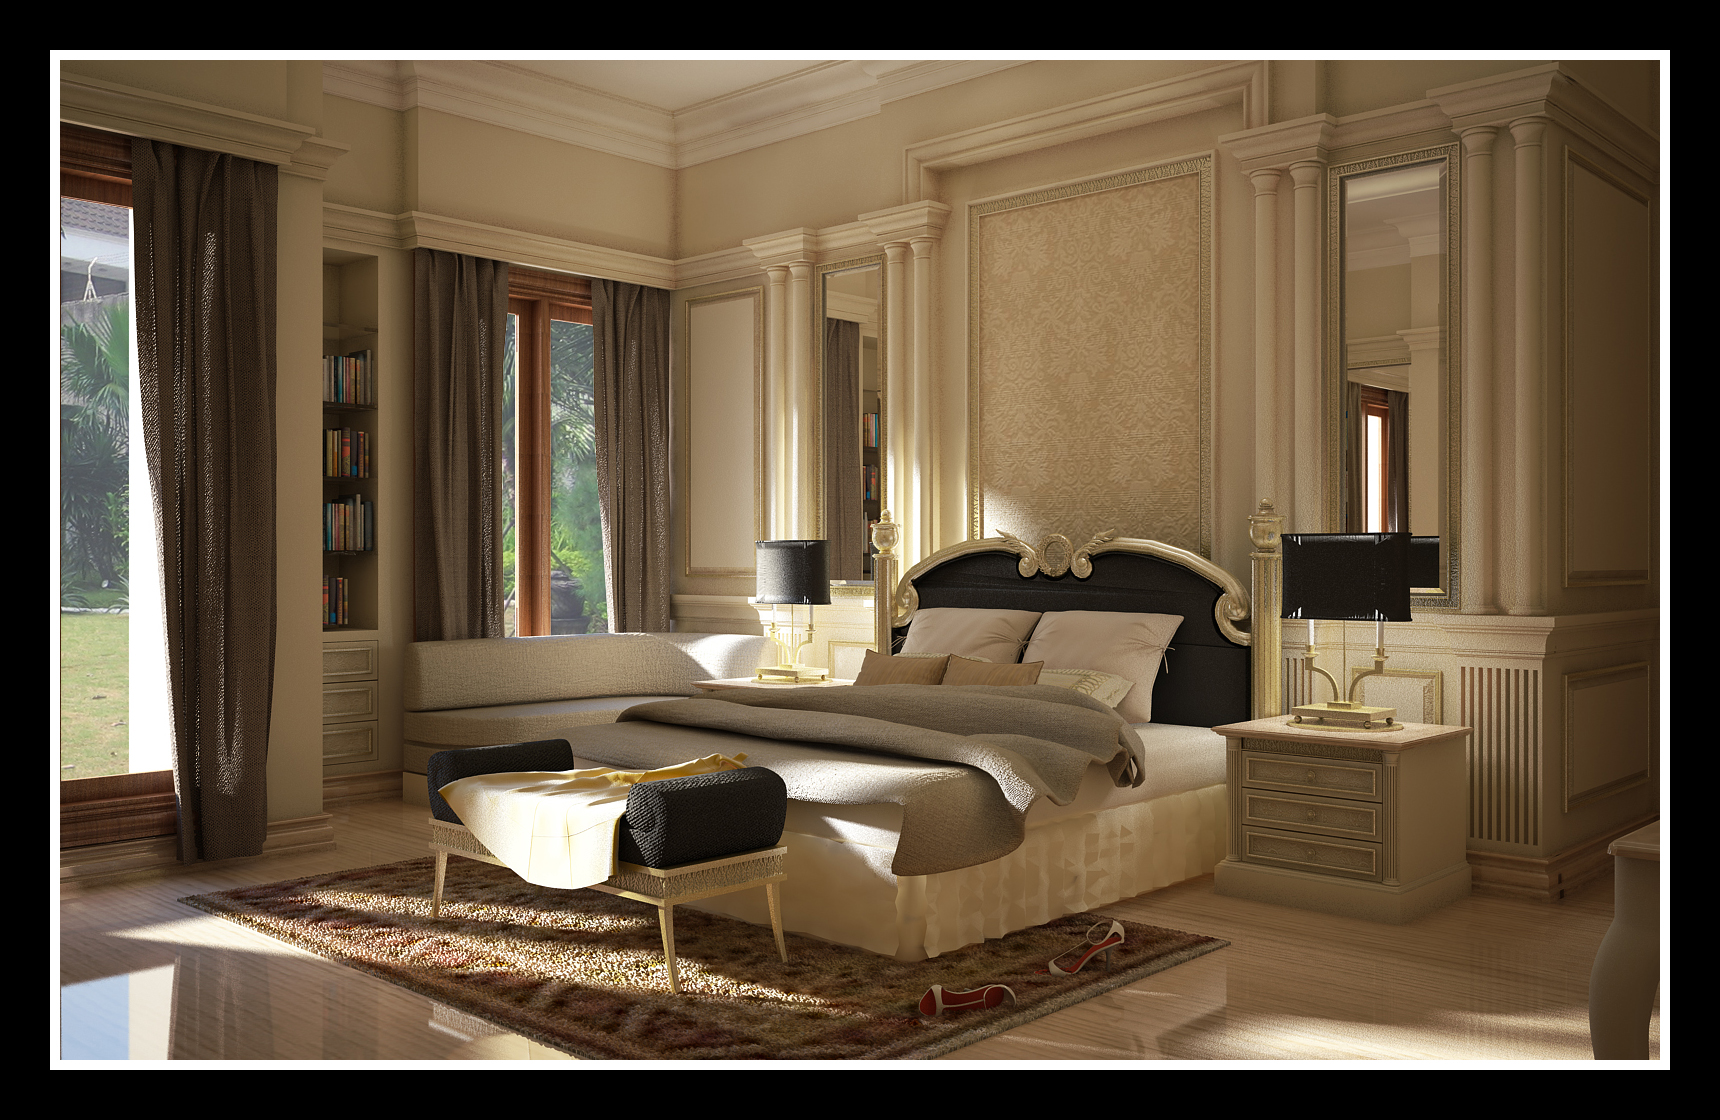 Bidc48 Bedroom Interior Design Classic Today 2021 01 07 Download Here